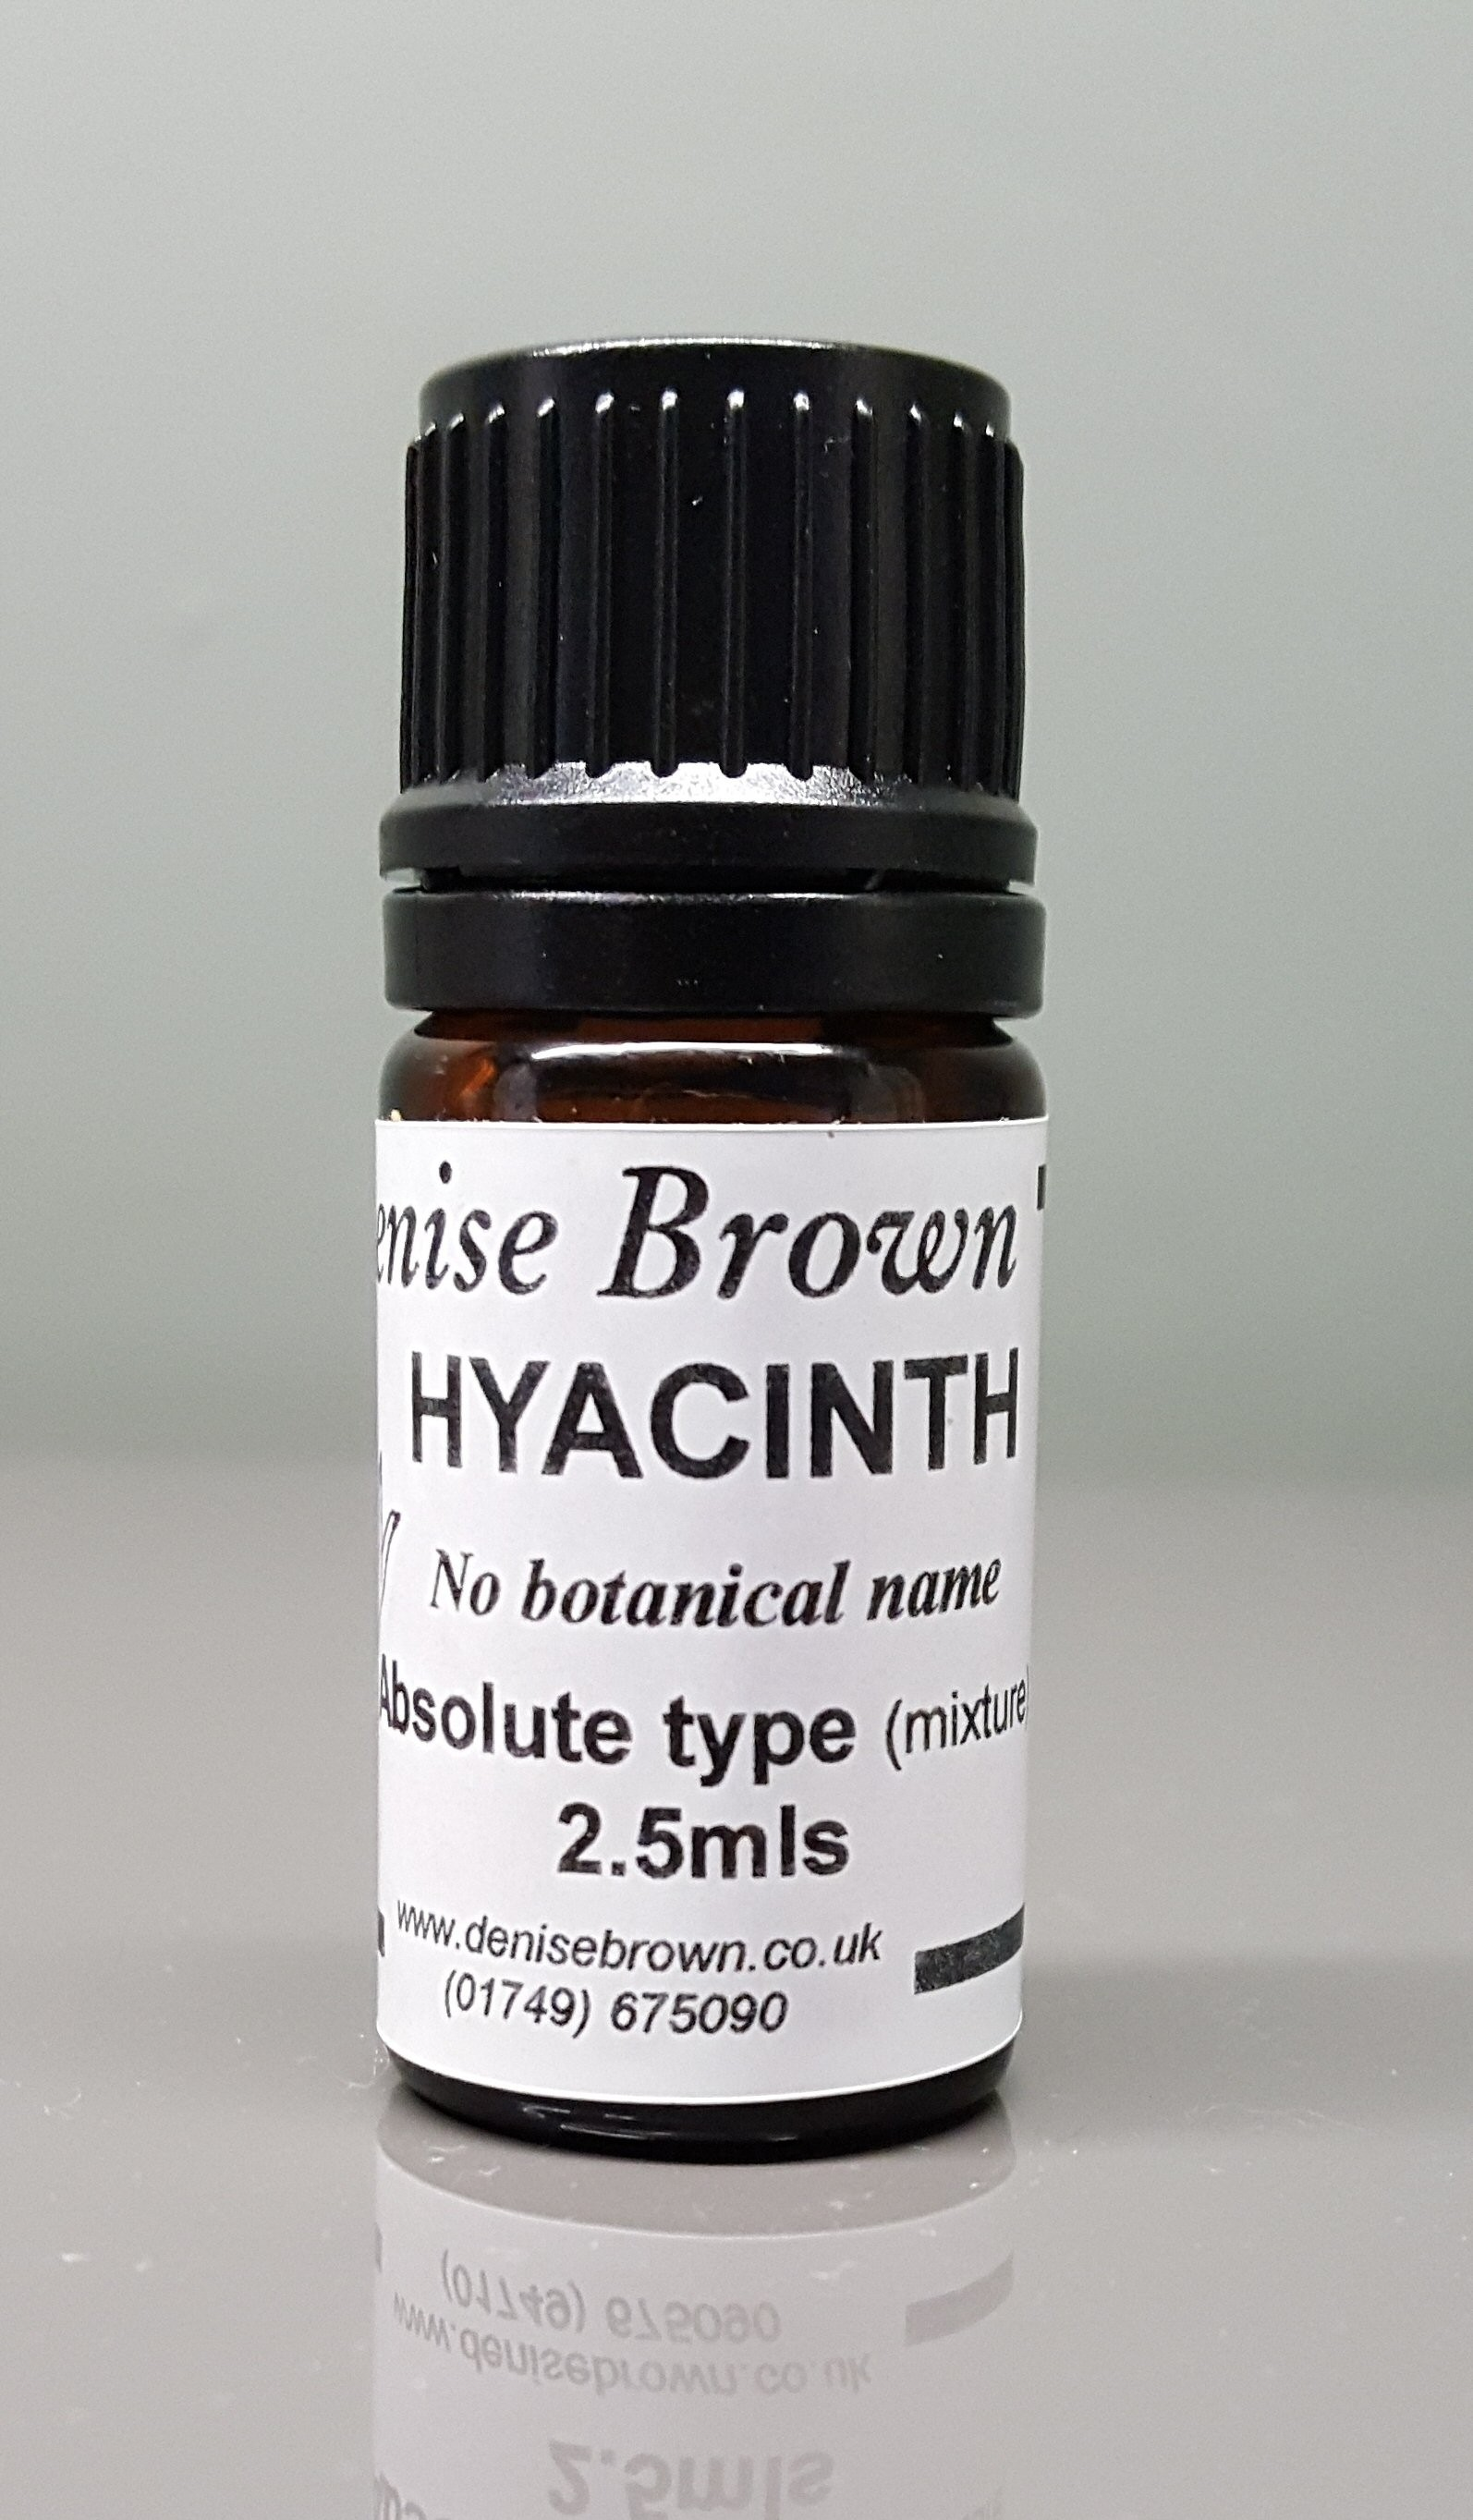 Hyacinth Absolute Type (2.5mls) Oil